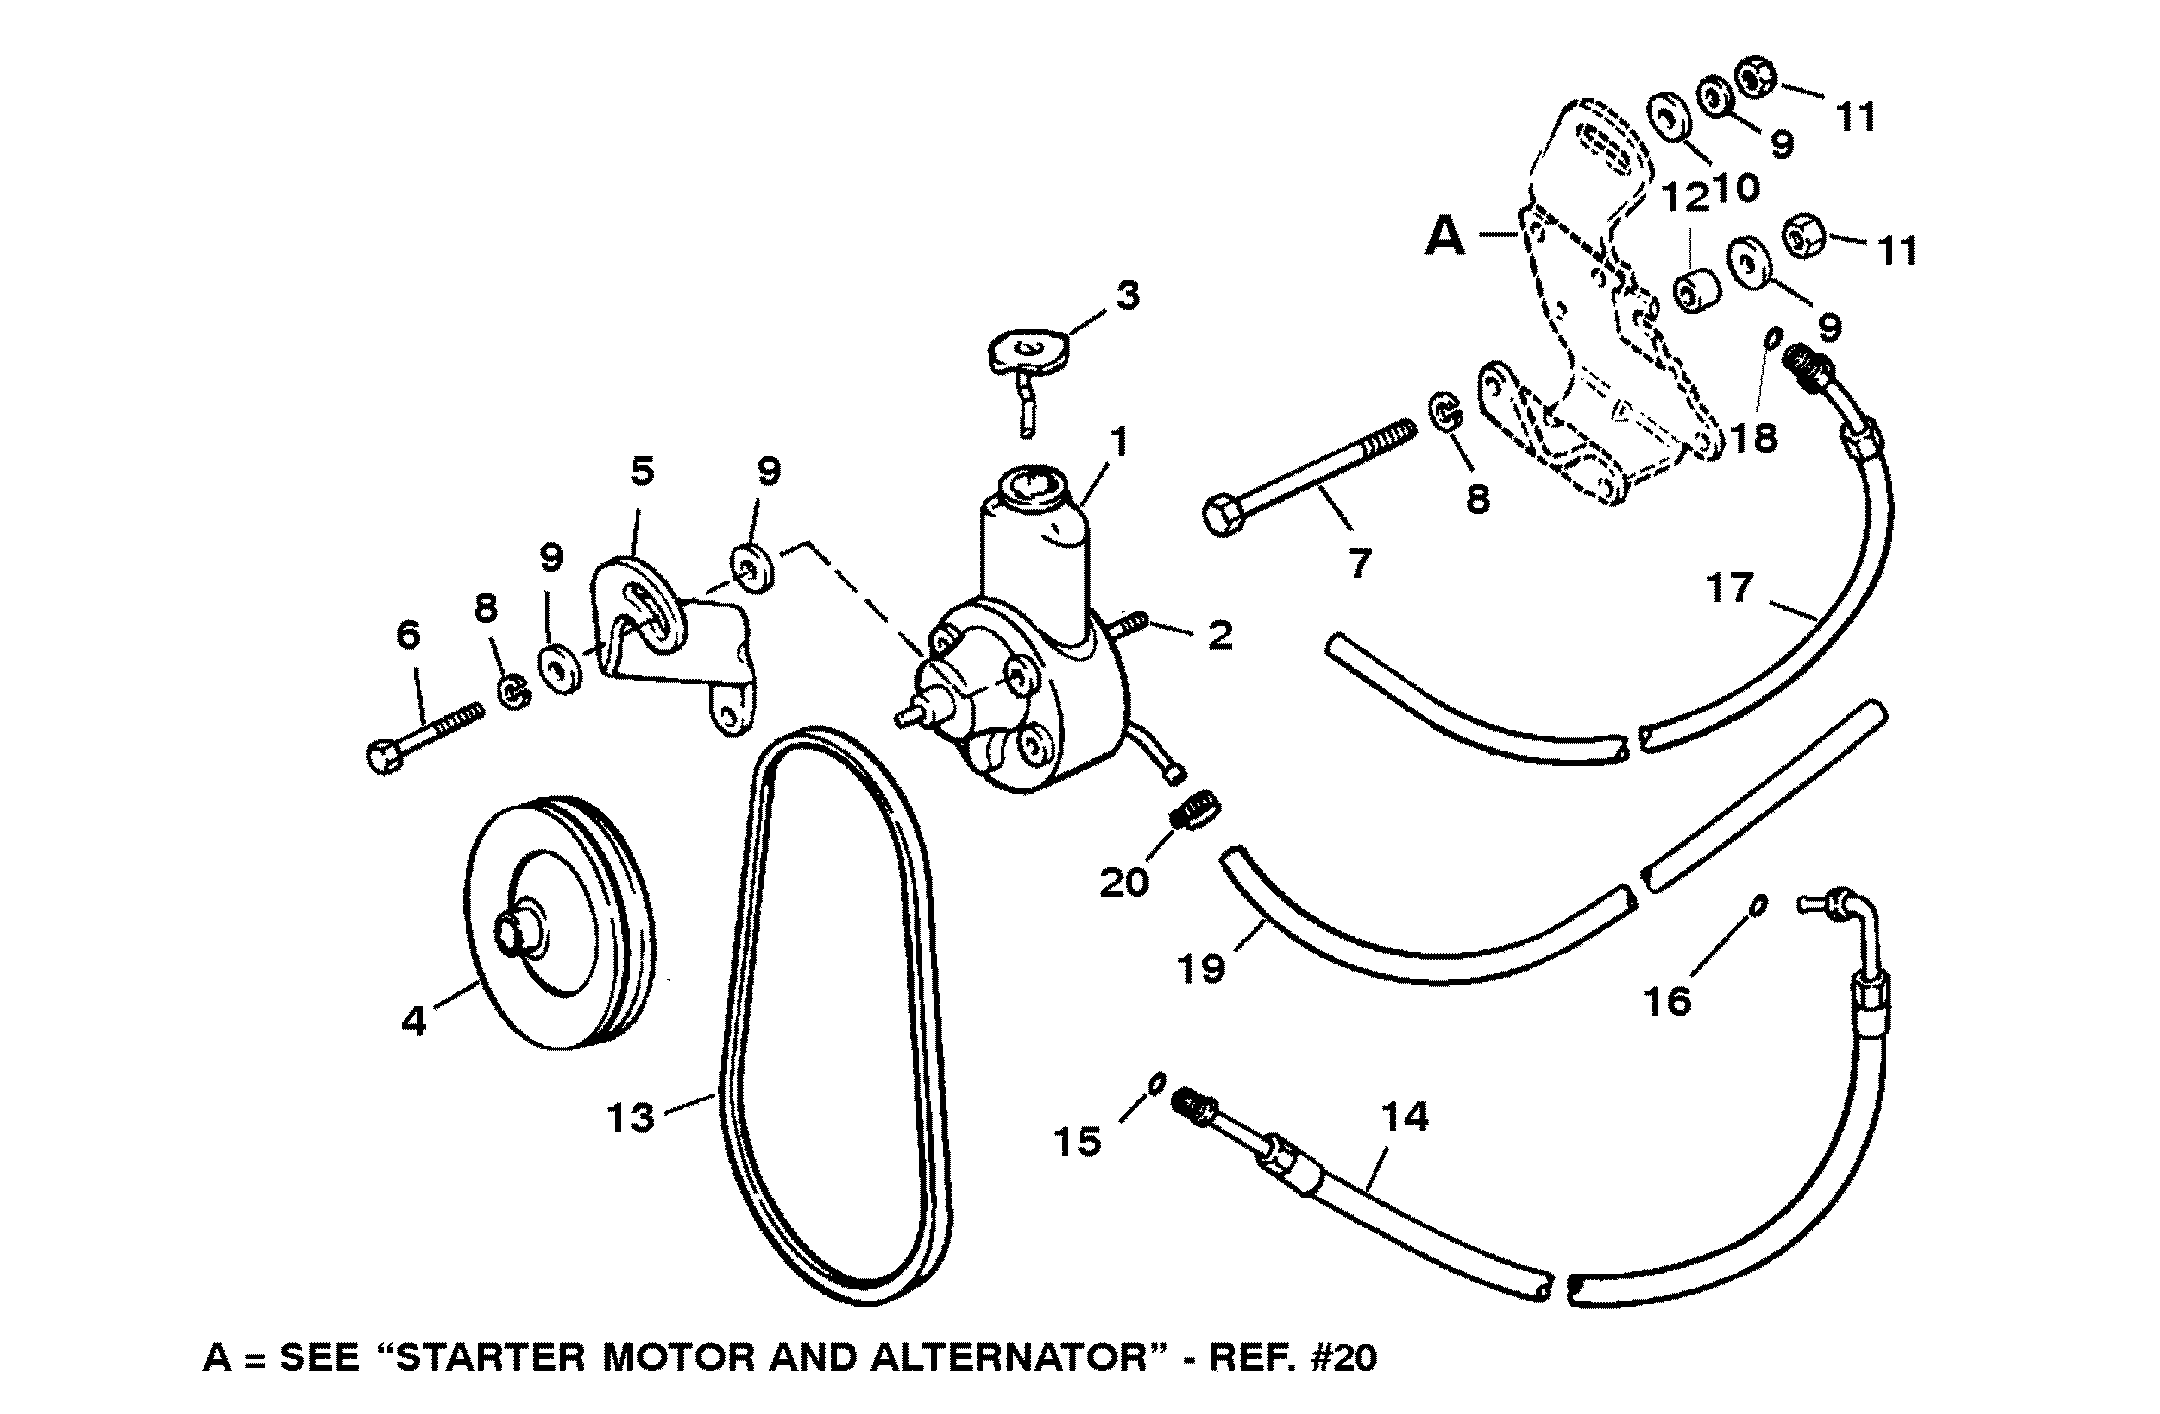 5192048 19721978 Starter Motor And Alternator Diagram And Parts